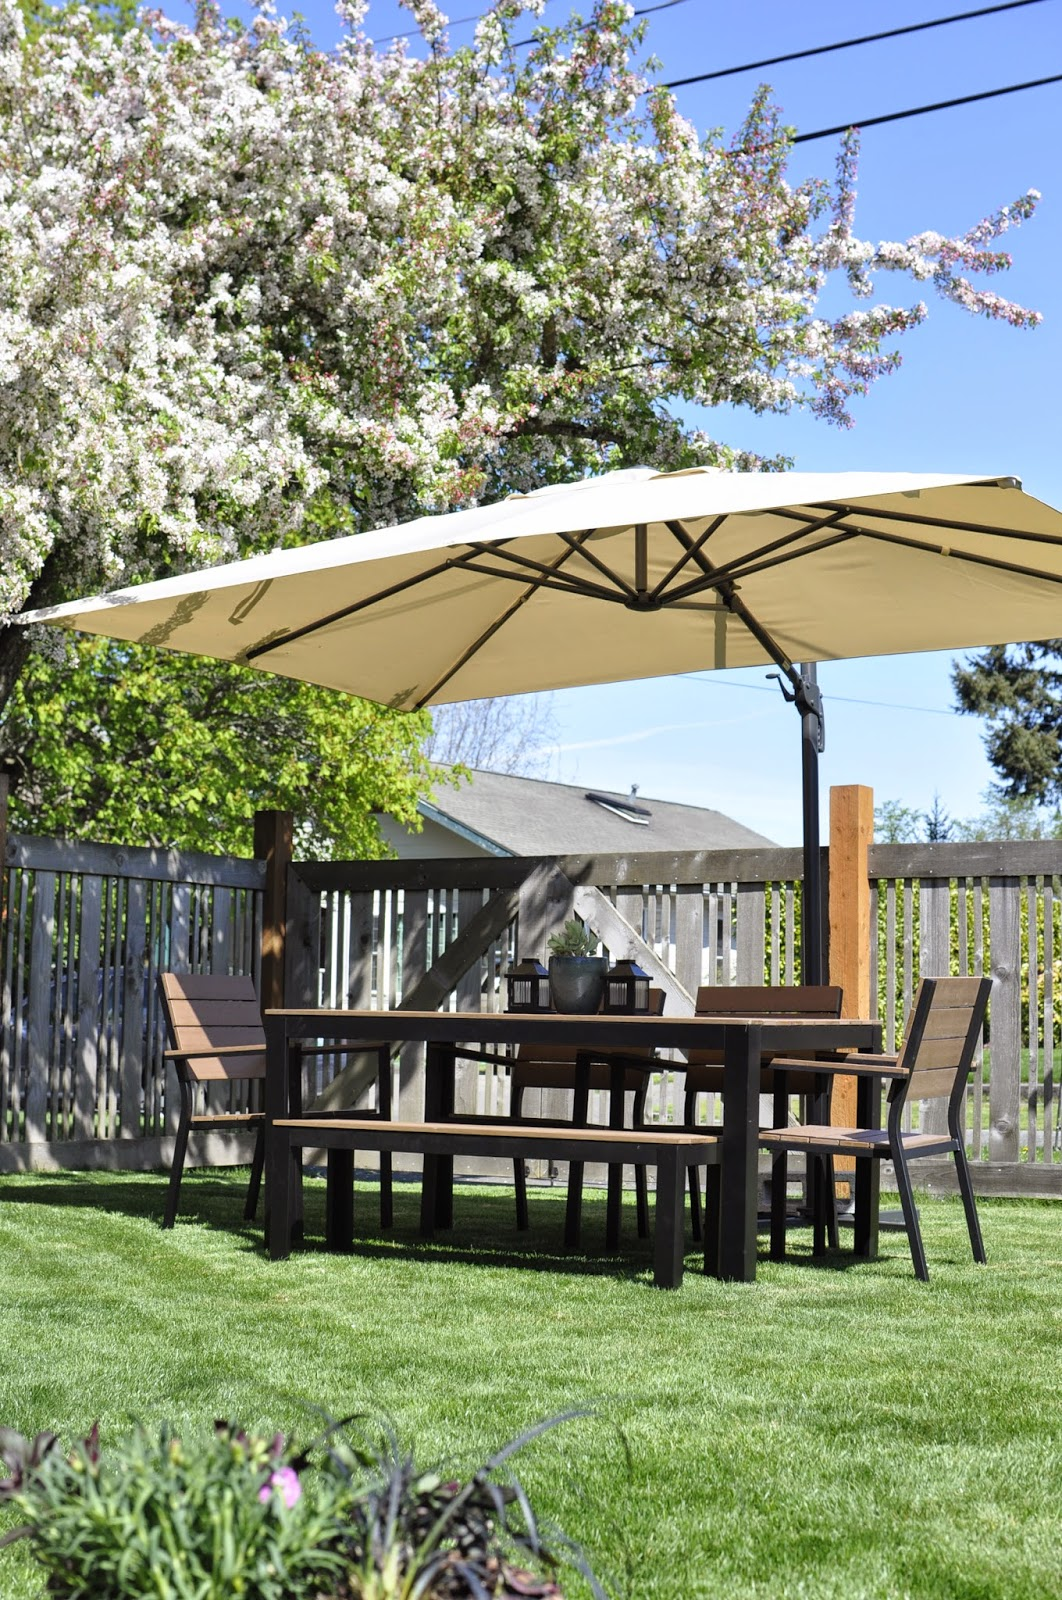 Ikea Patio Umbrella For Furniture Surrounding With Fence